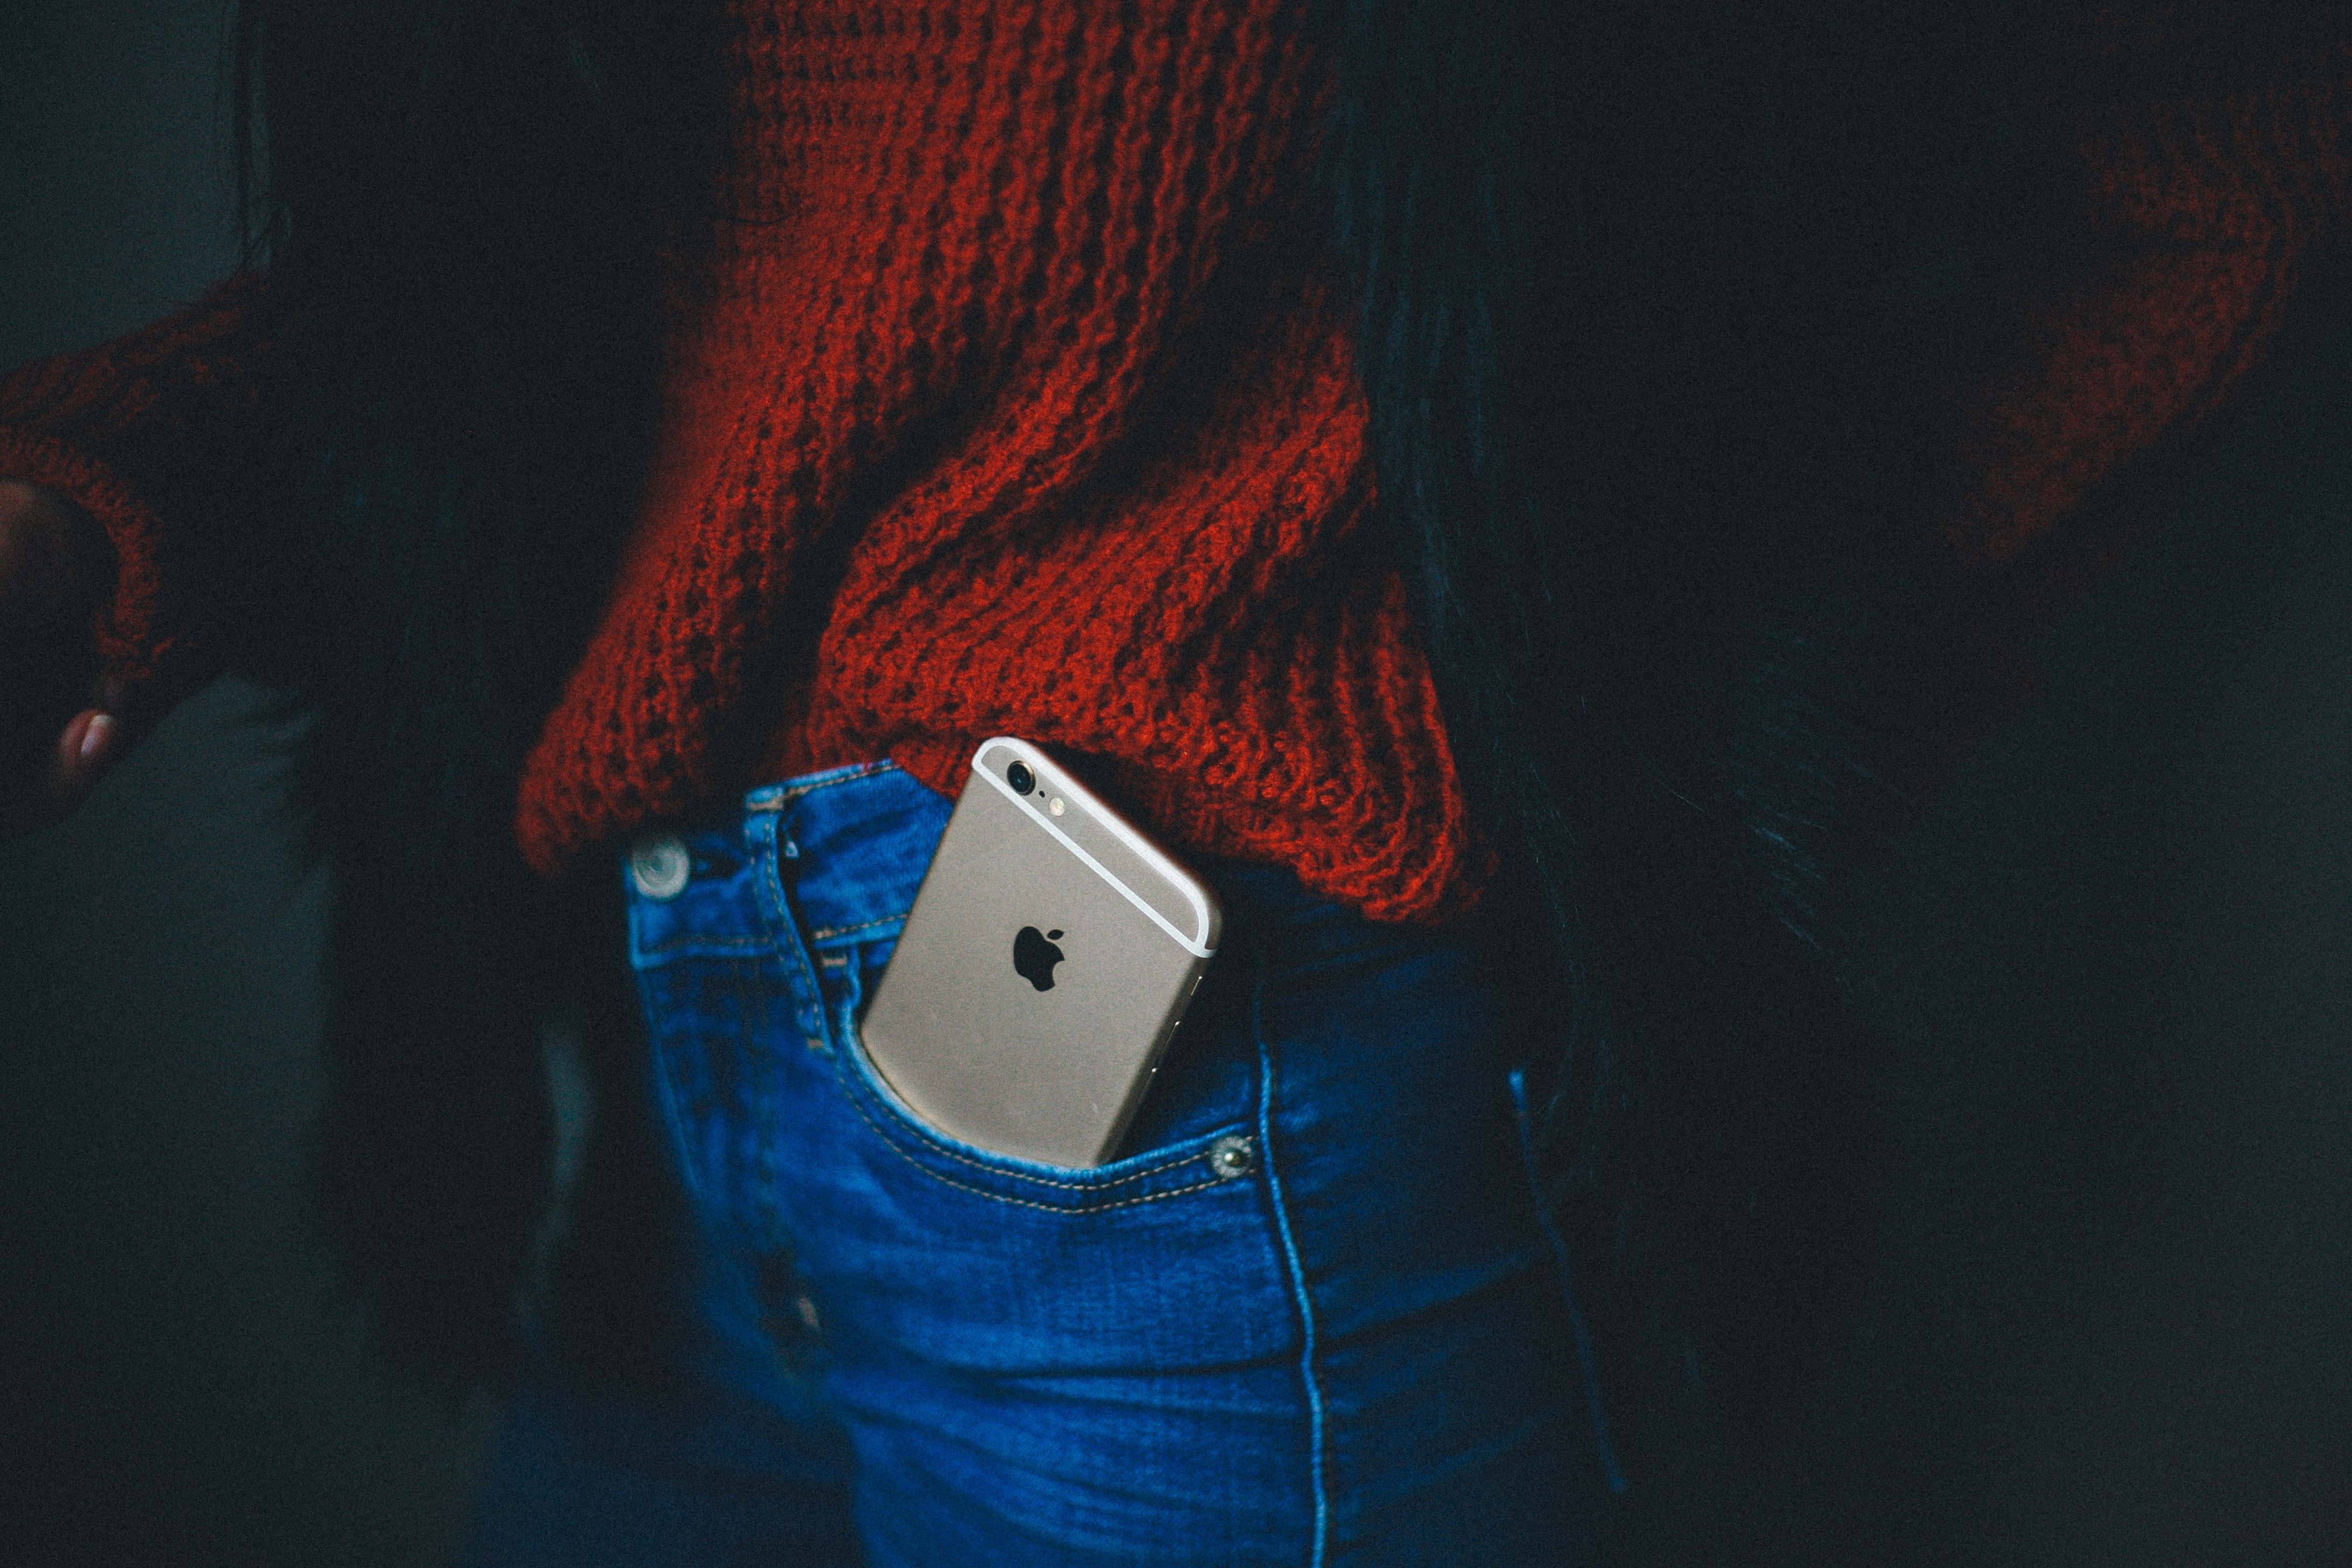 An iPhone sticking out of a pocket in a person's jeans